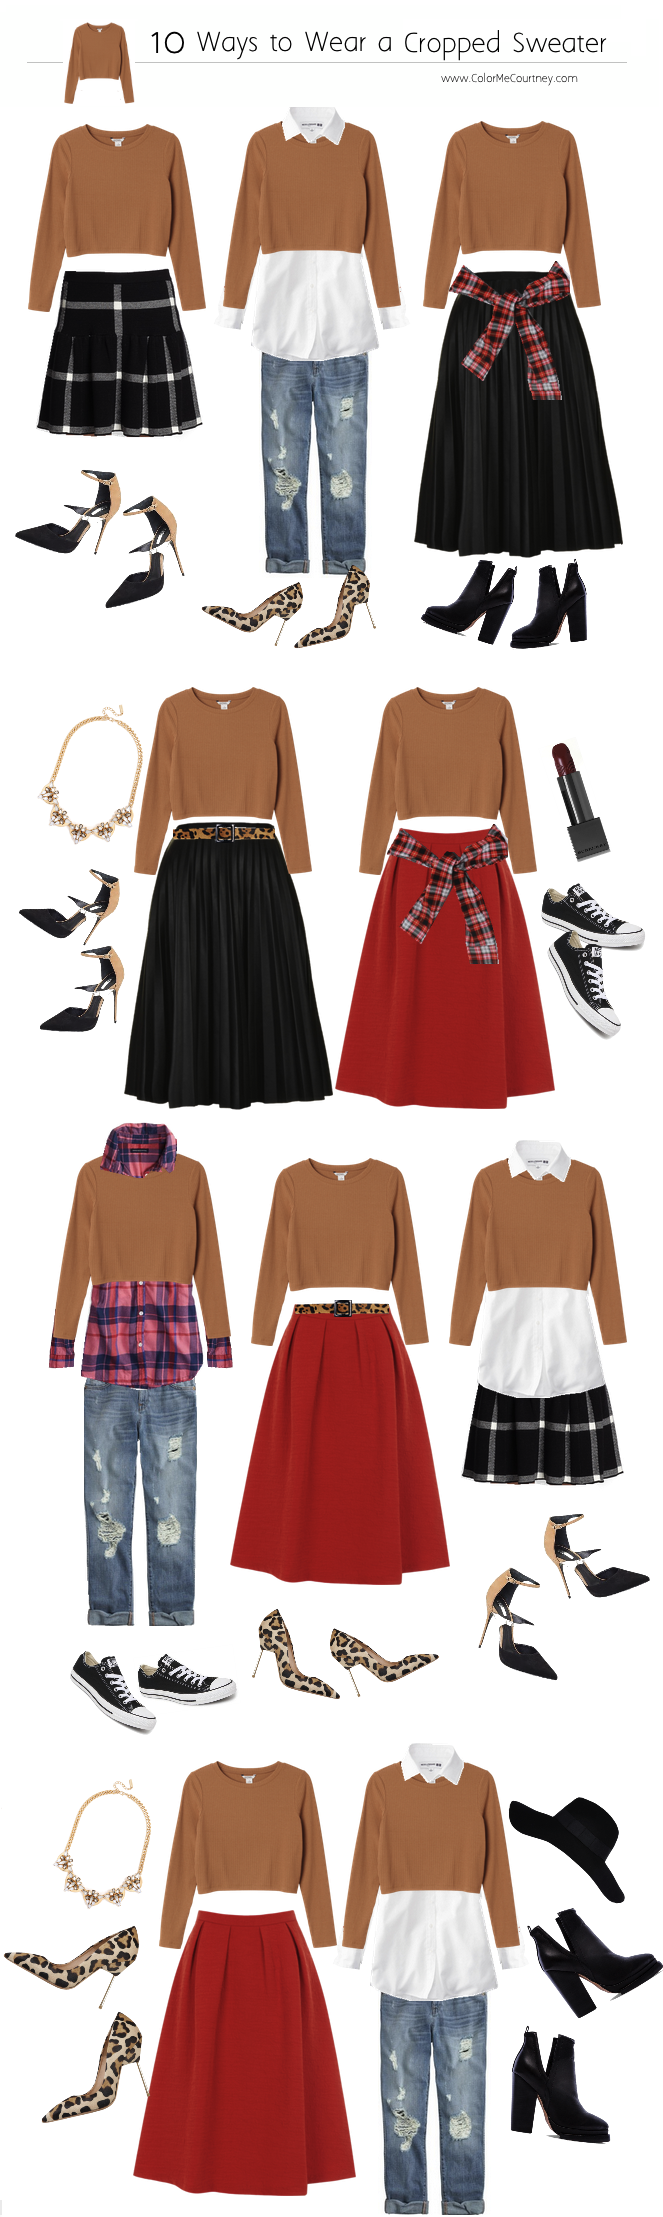 100 outfits create 100 outfits from 10 pieces 10 pieces 100 outfits what to wear for fall fall style guide fall shopping guide what to buy fro fall fall fashion fall fashion guide how to dress for fall what to wear for fall fall fashion guide how to wear a plaid cropped sweater 10 ways to wear a cropped sweater ten ways to wear